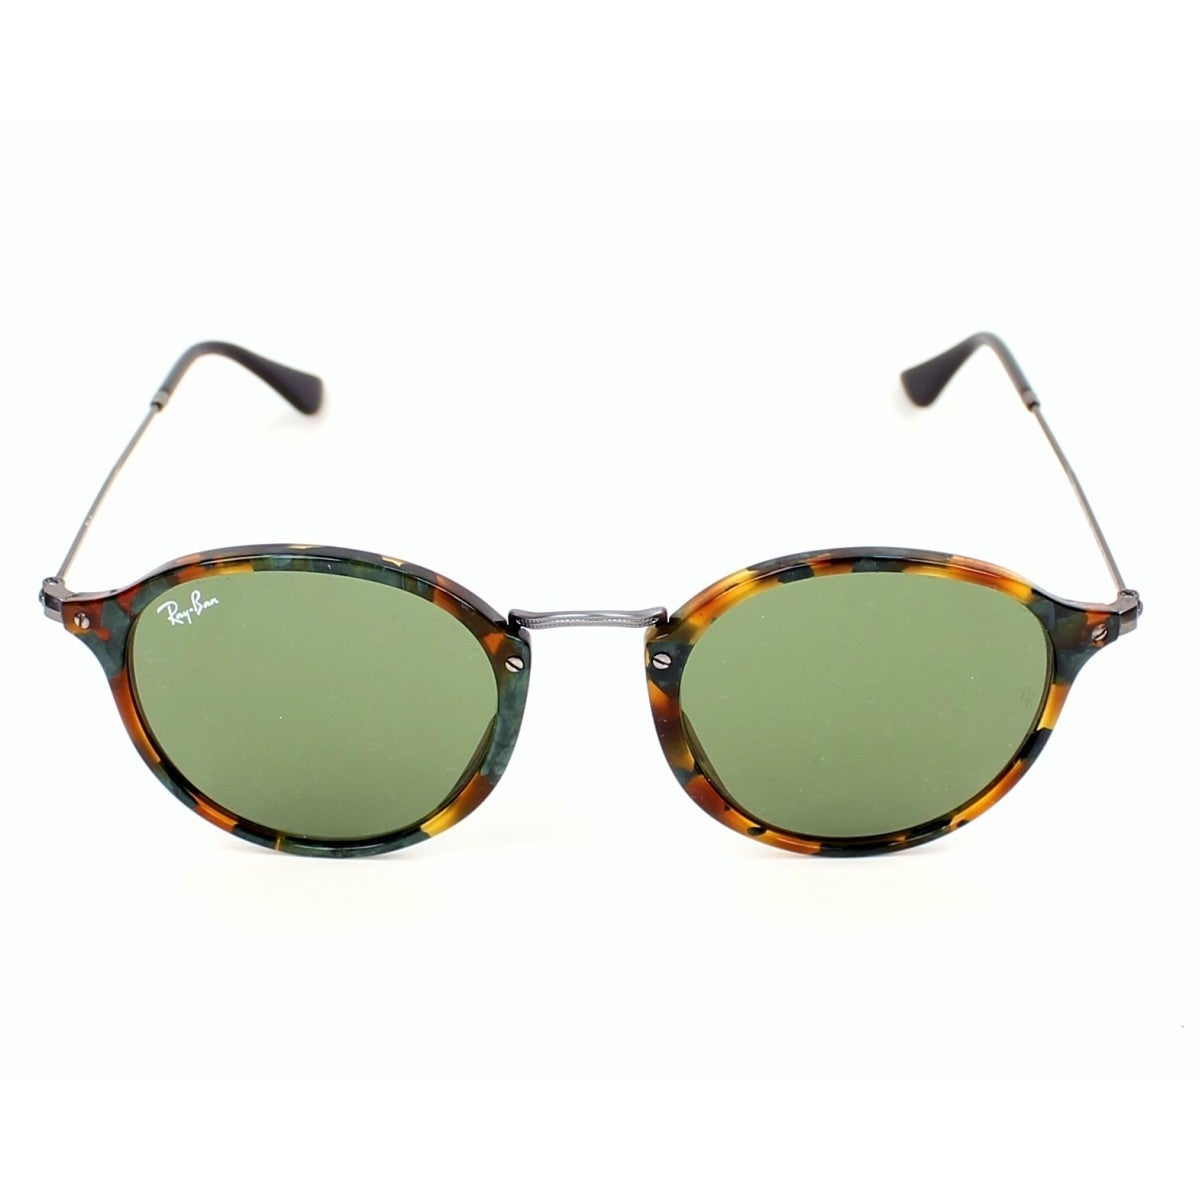 42f13472bac Shop Ray-Ban RB2447 11594E Round Fleck Tortoise Gunmetal Frame Green  Classic 49mm Lens Sunglasses - Free Shipping Today - Overstock - 12392807